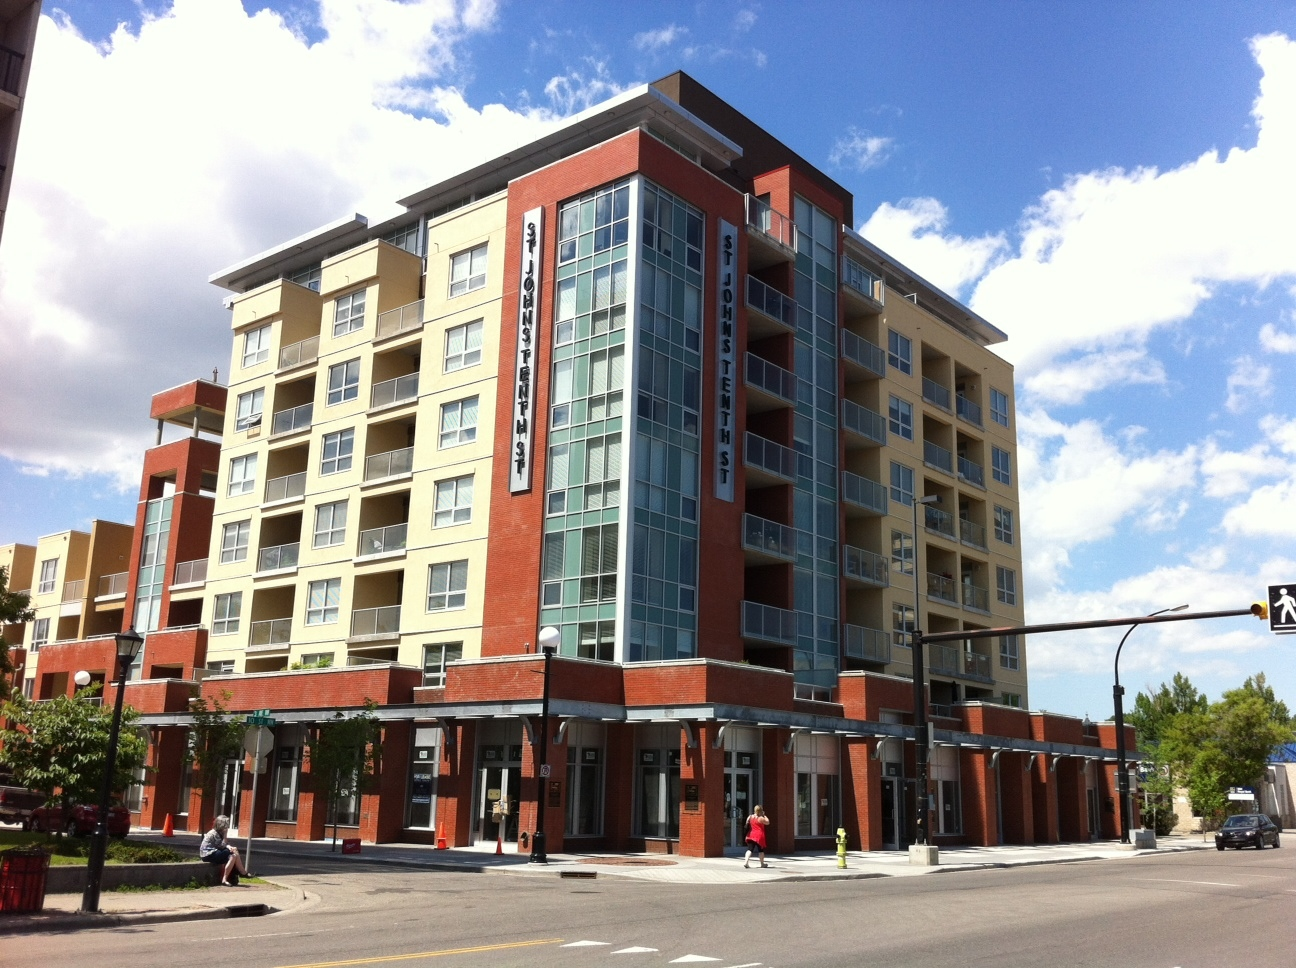 St Johns on 10th is just one of several new mid-rise condos recently completed, under construction or planned.